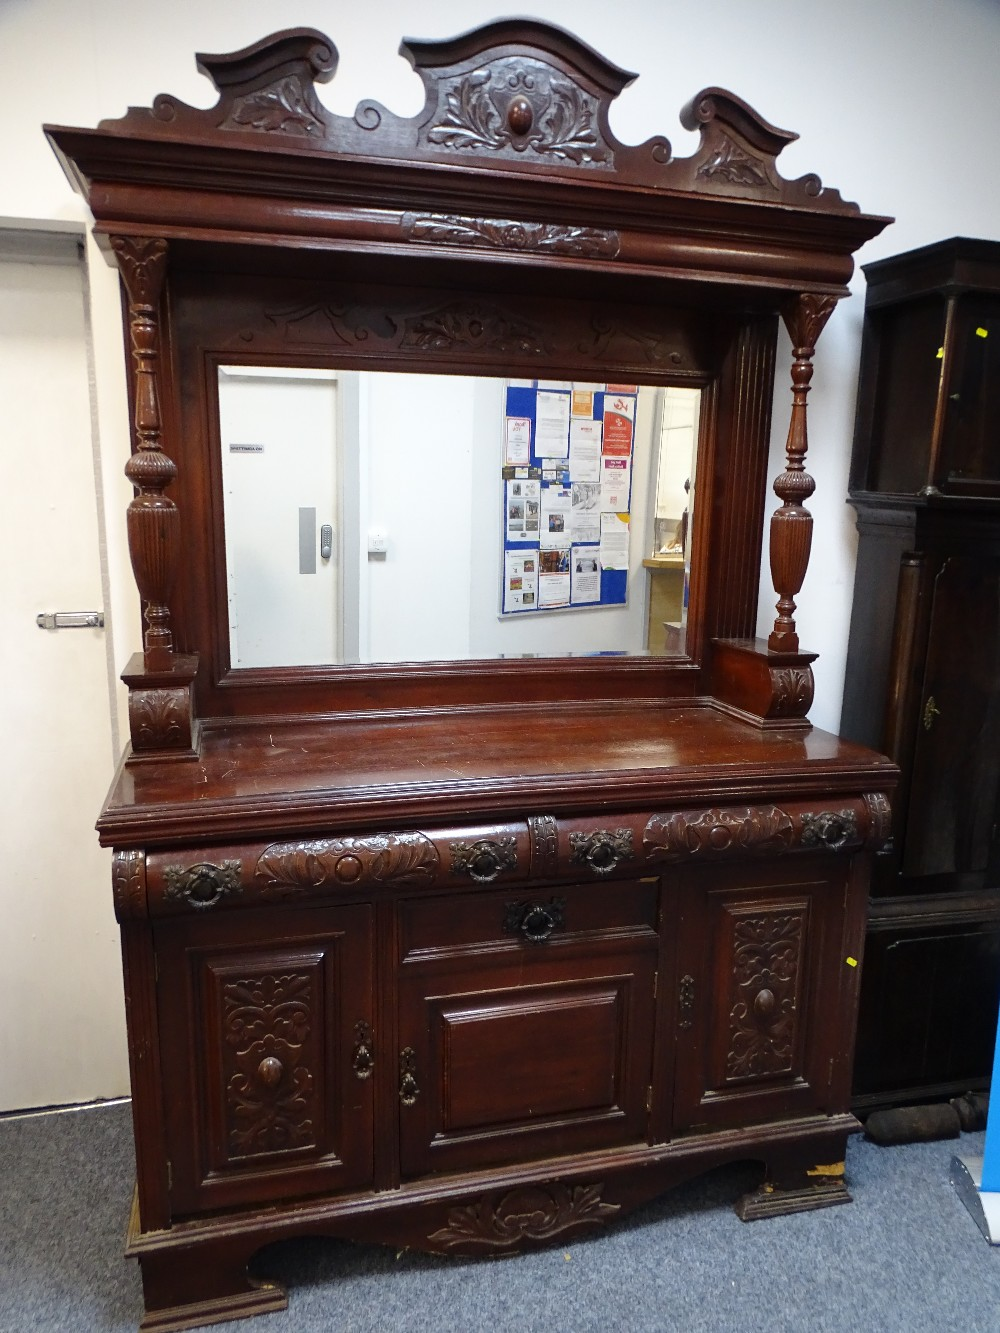 Lot 83 - SUBSTANTIAL EDWARDIAN MIRROR BACK SIDEBOARD with reeded canopy support pillars, carved detail and